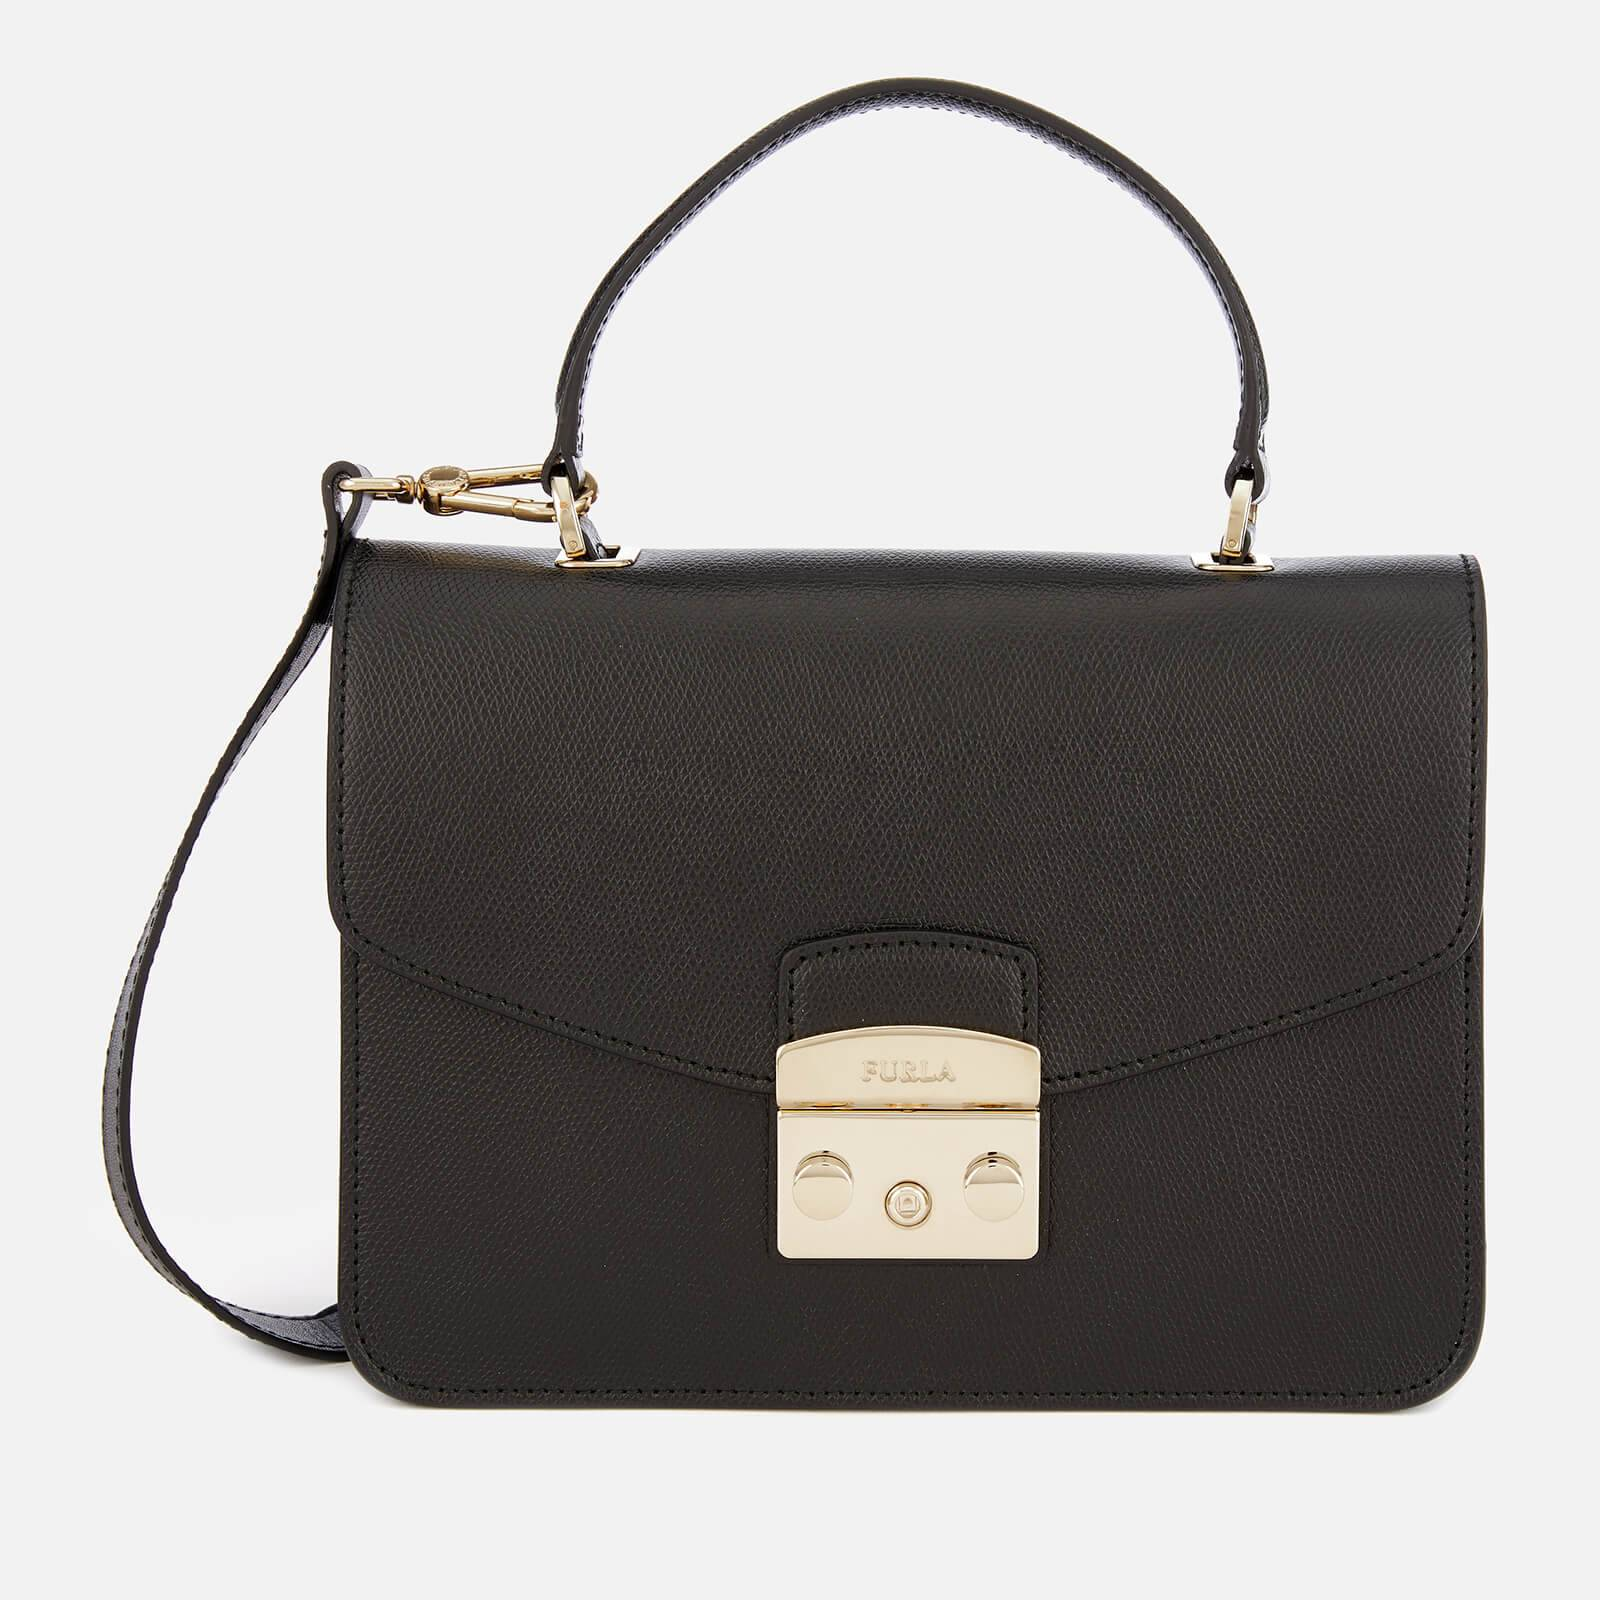 Furla Women's Metropolis Small Top Handle Bag - Black